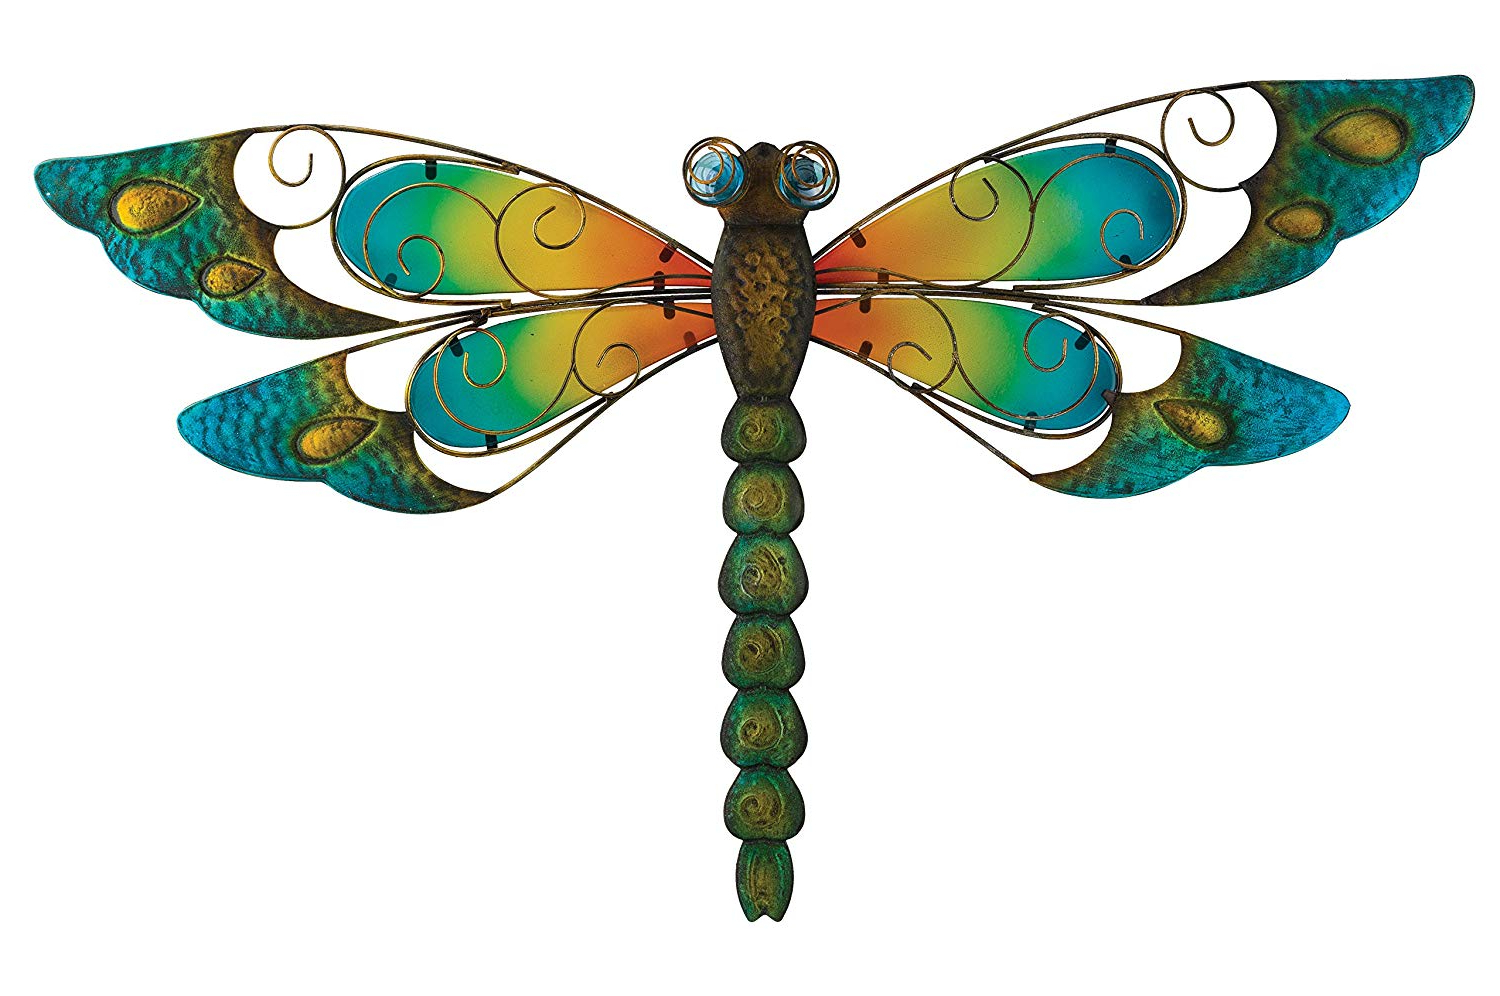 Widely Used Dragonfly Wall Decor Regarding Amazon : Regal Art &gift Dragonfly Wall Decor, 29 Inch, Blue (View 8 of 20)